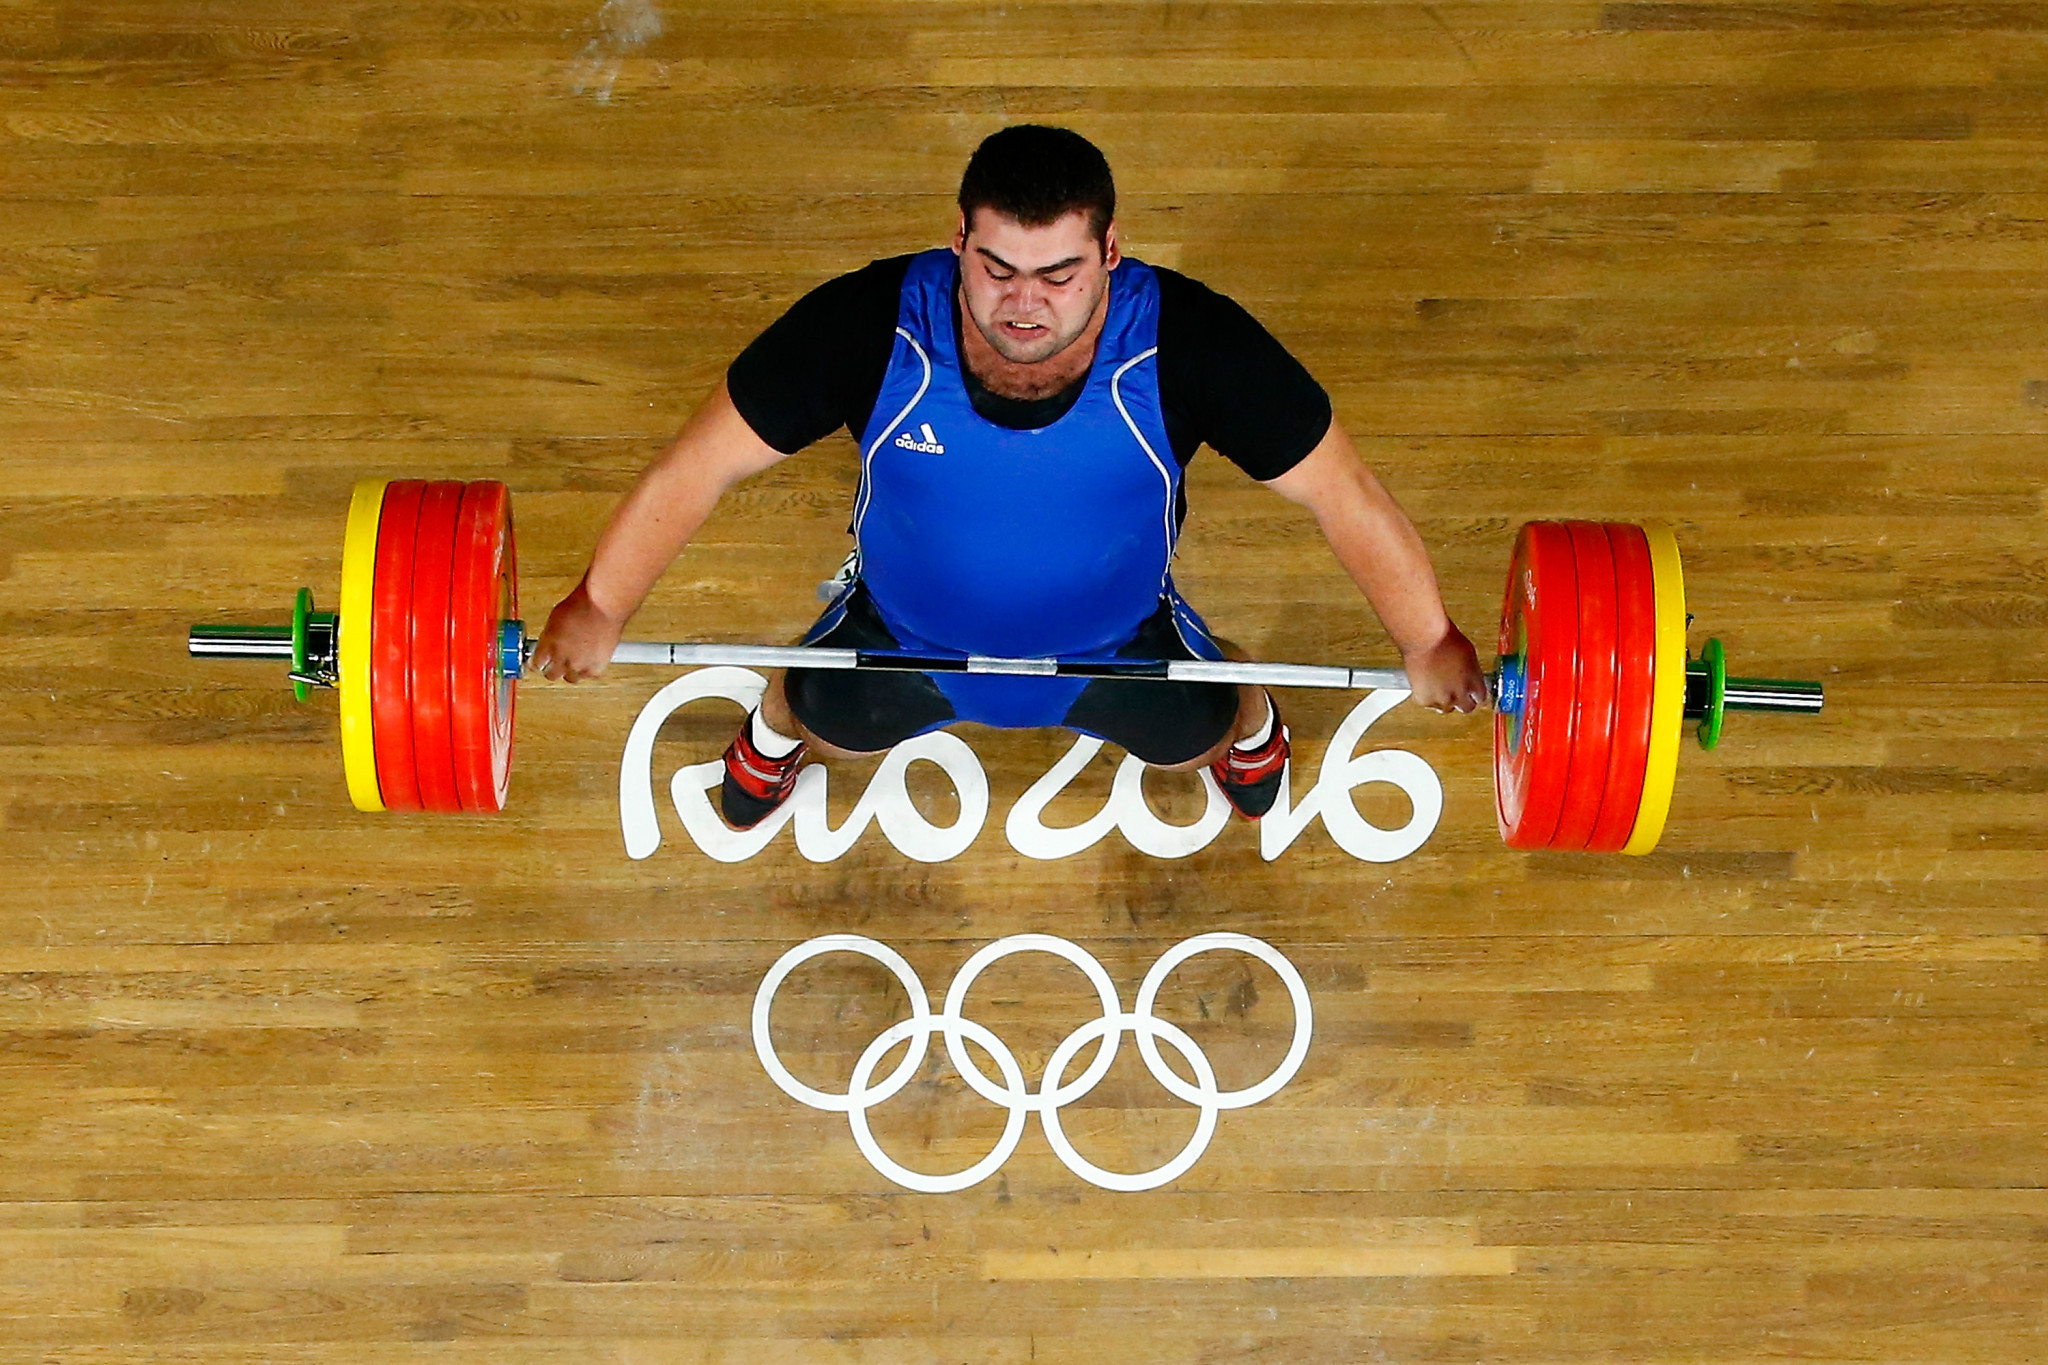 Weightlifting's position on the Olympic programme has been saved for now - but there are fears it could come under threat again if the current scandal is not dealt with quickly and properly ©Getty Images